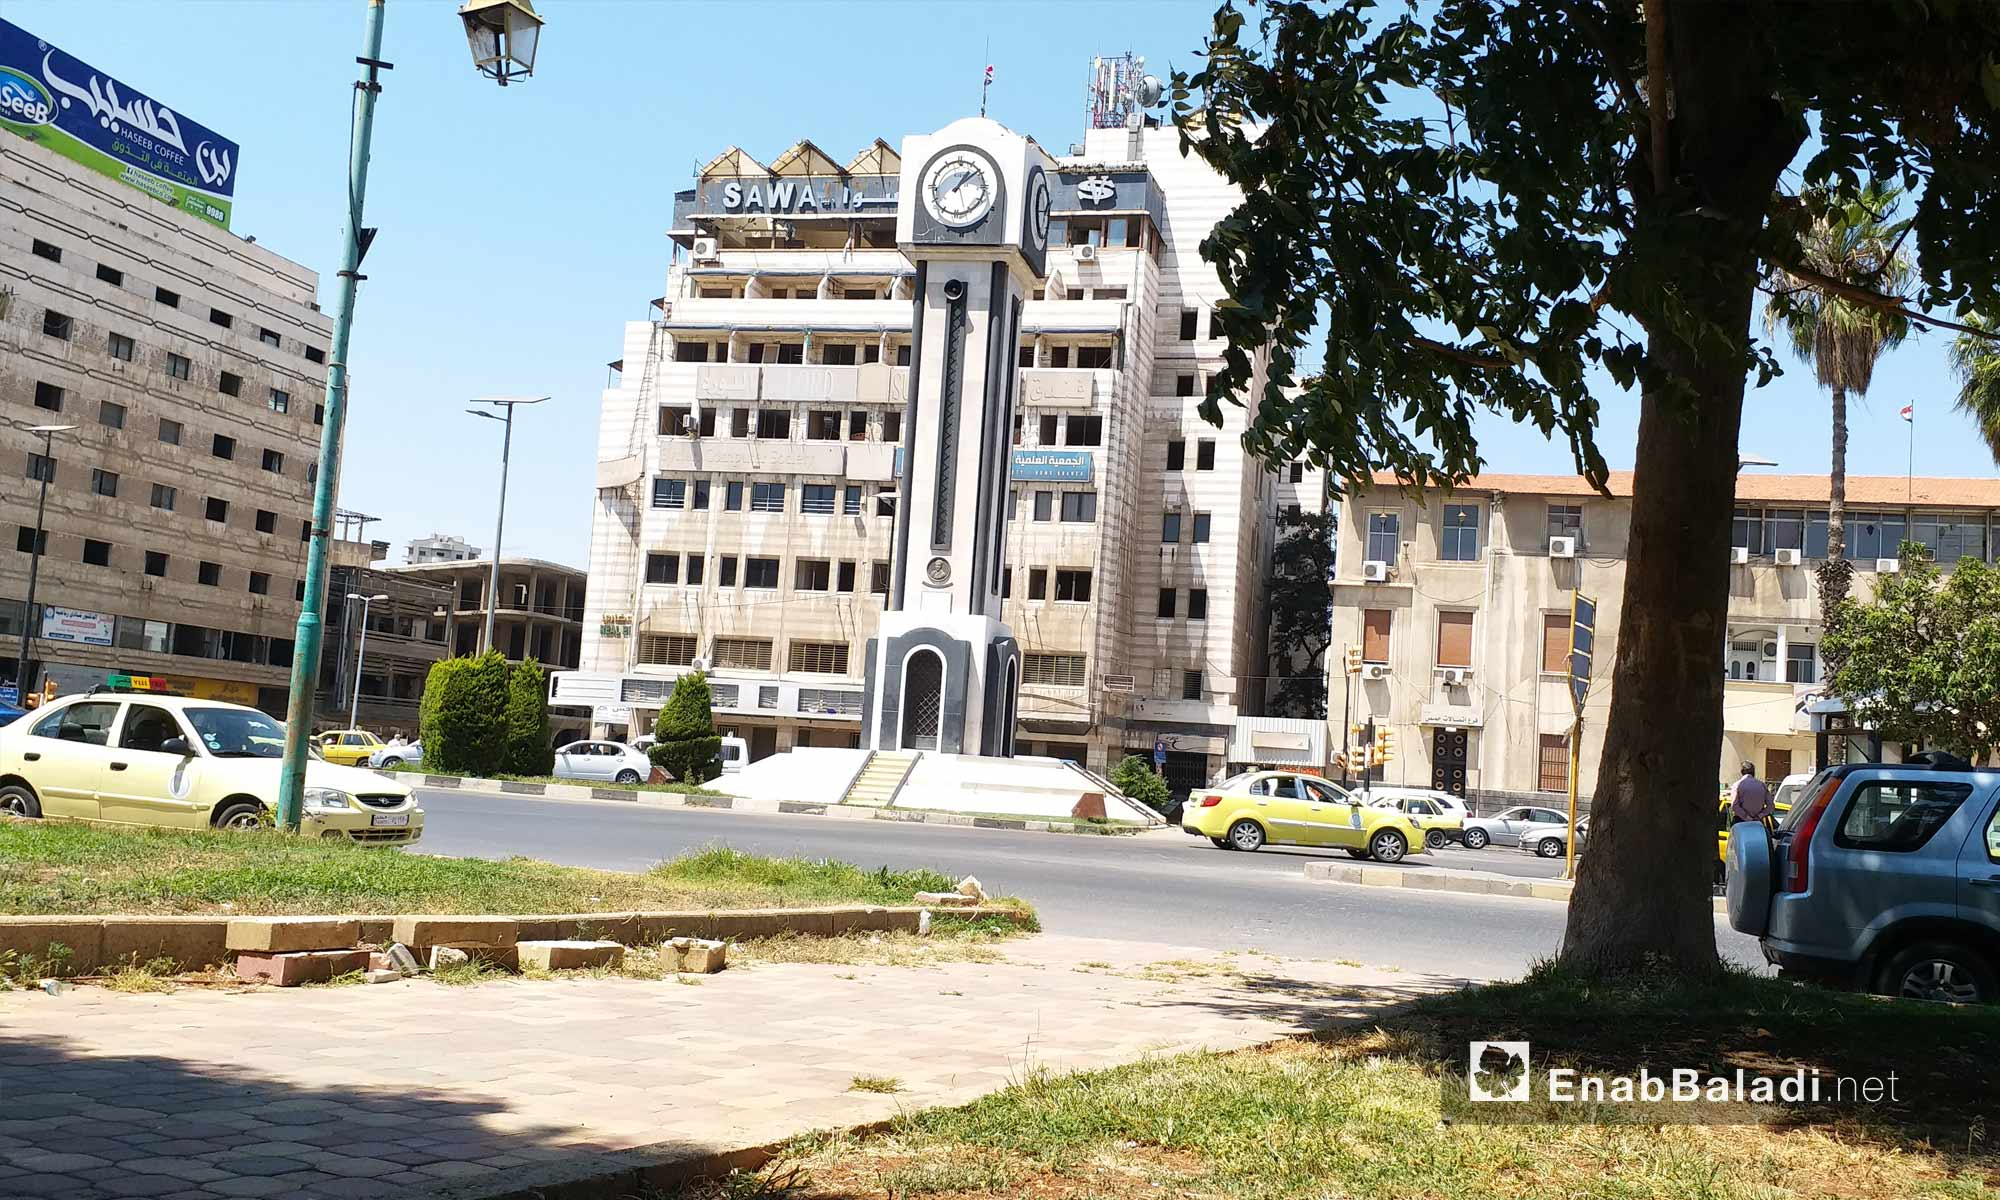 The new clock in the middle of Homs city – August 19, 2018 (Enab Baladi)